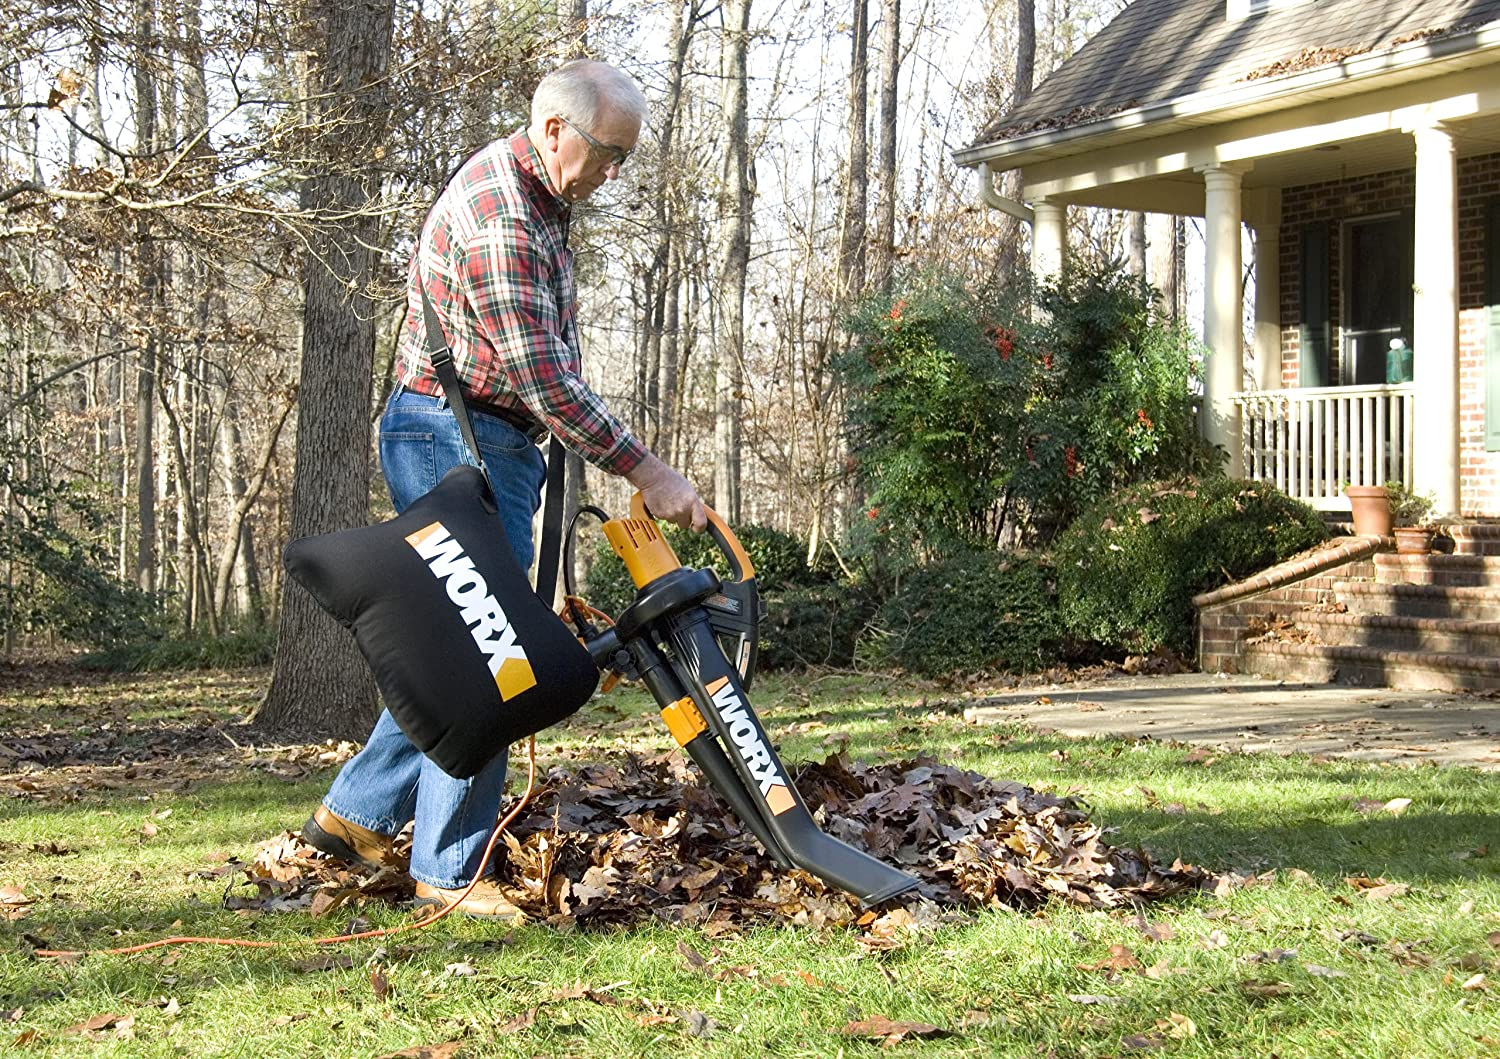 Amazon worx trivac wg500 12 amp all in one electric blower amazon worx trivac wg500 12 amp all in one electric blowermulcher vacuum lawn and garden blower vacs garden outdoor publicscrutiny Images